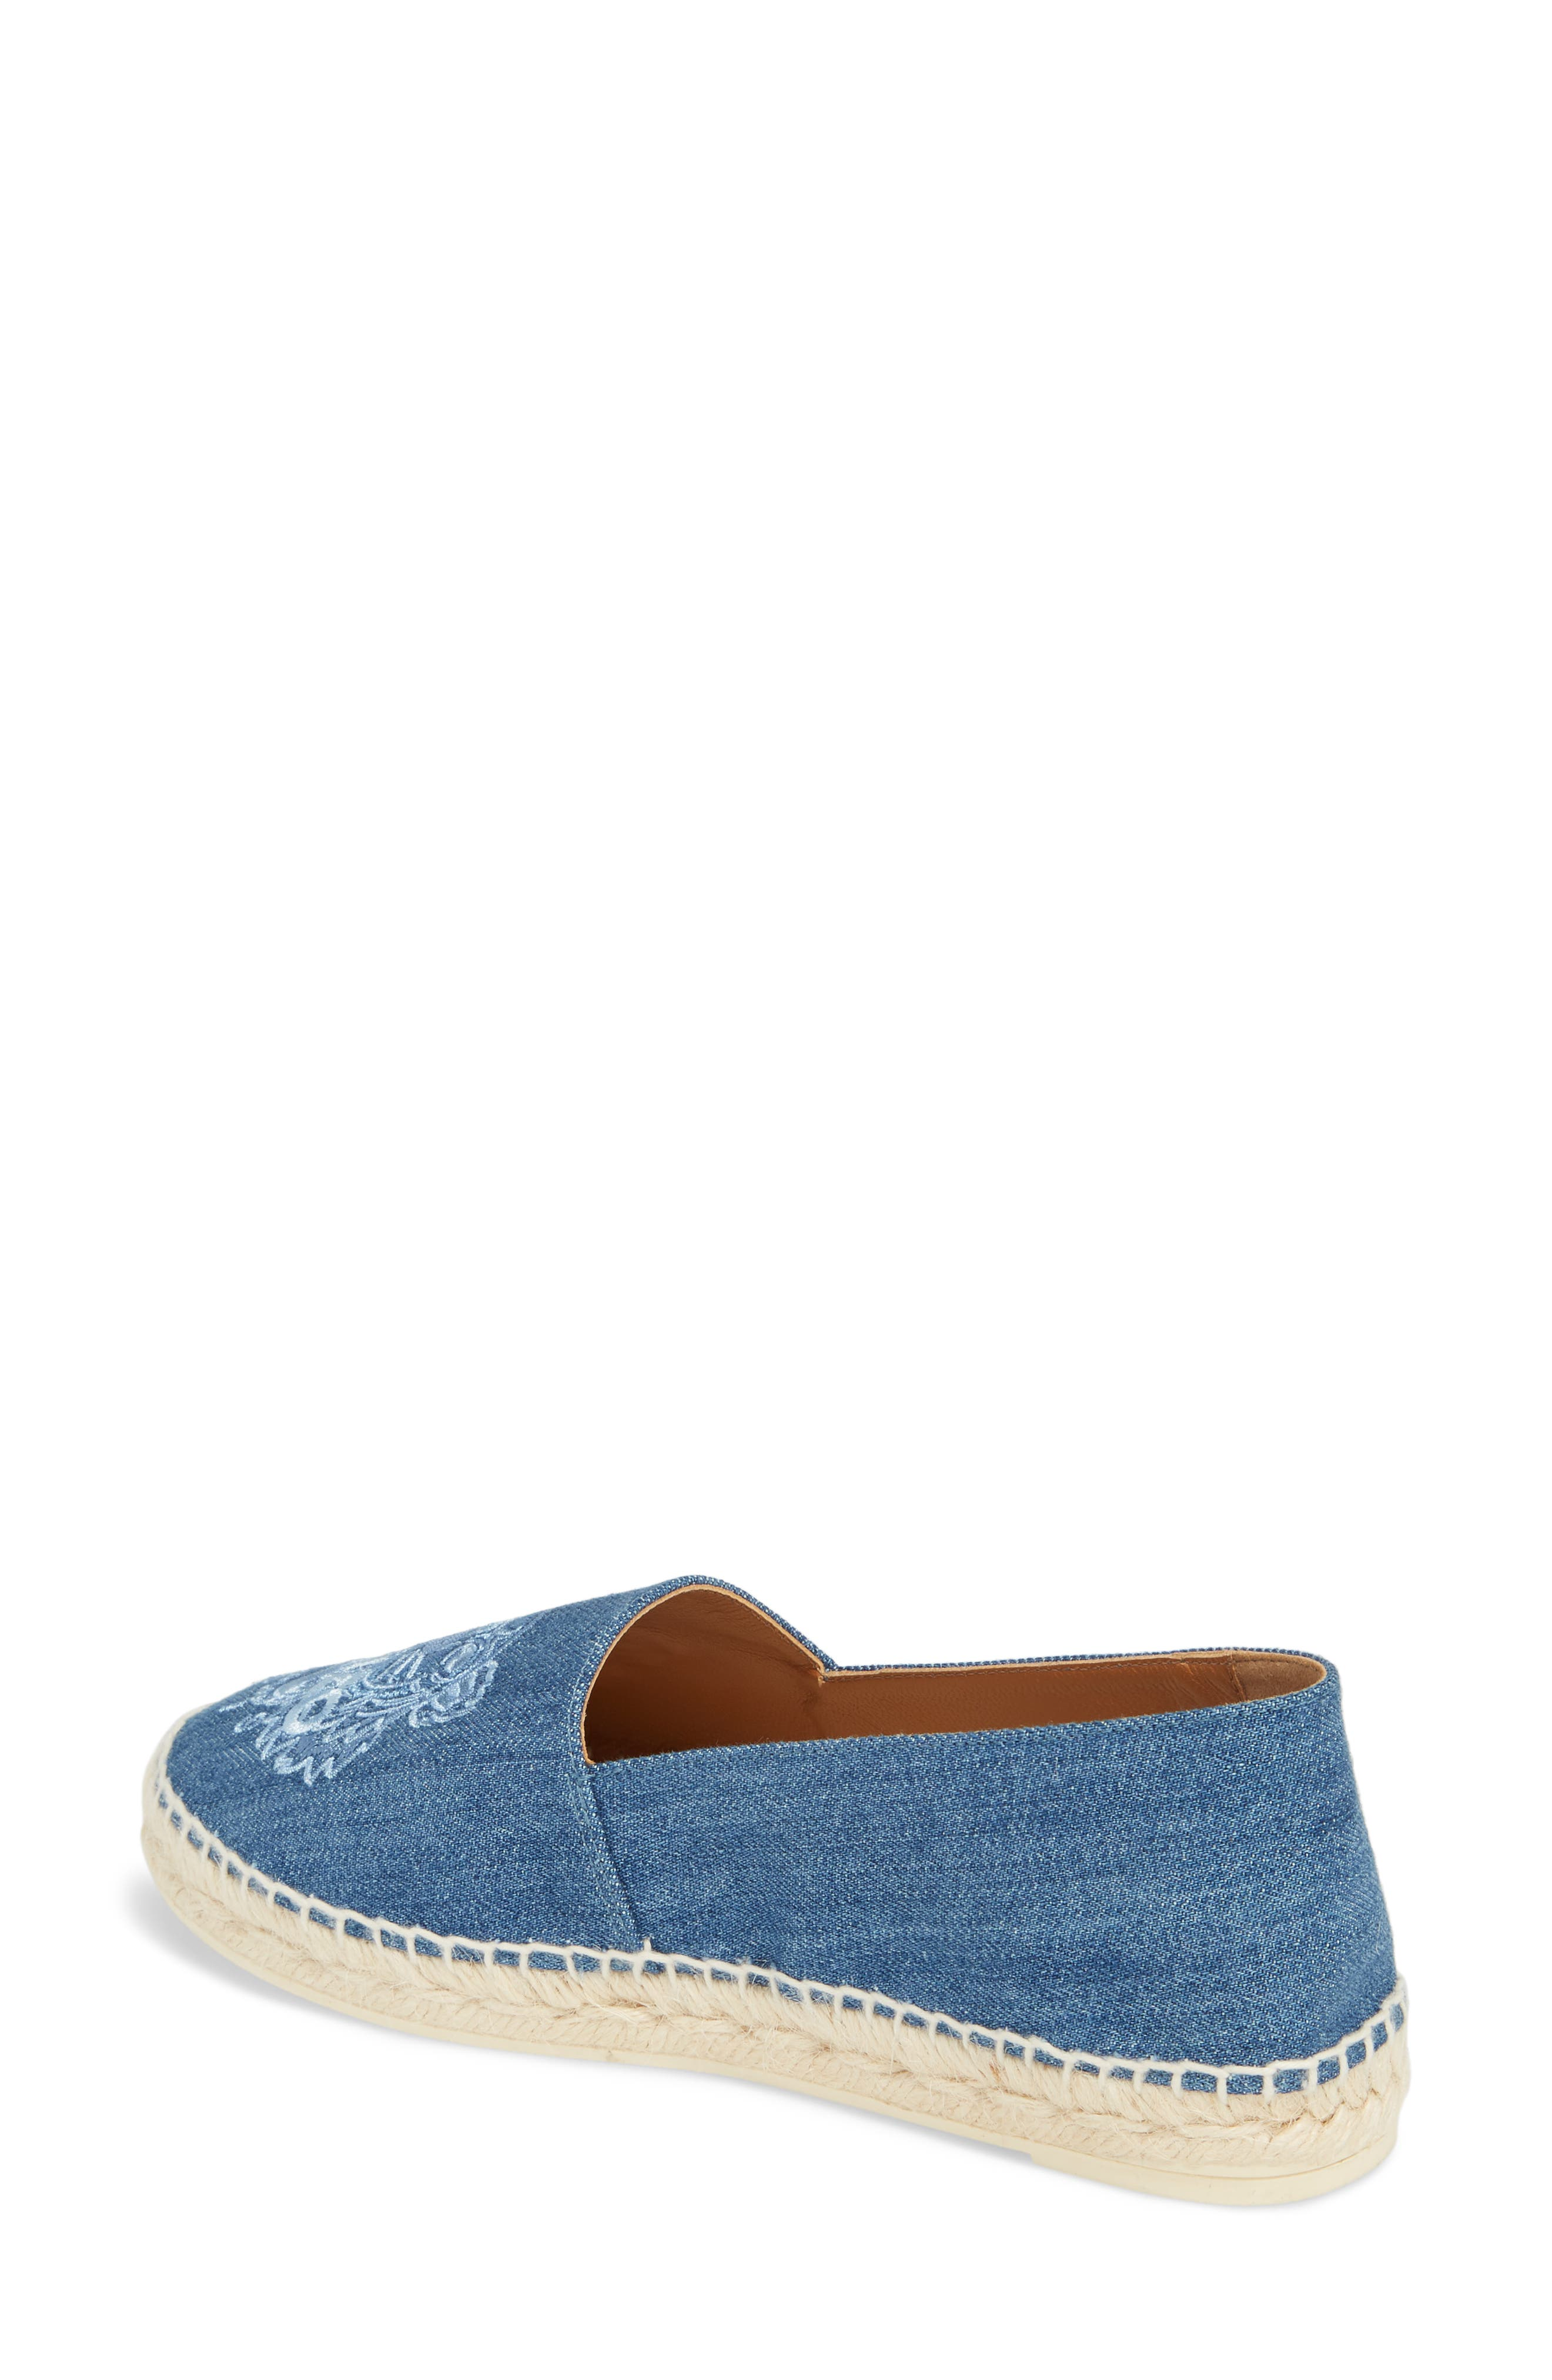 Tiger Embroidered Espadrille,                             Alternate thumbnail 2, color,                             452